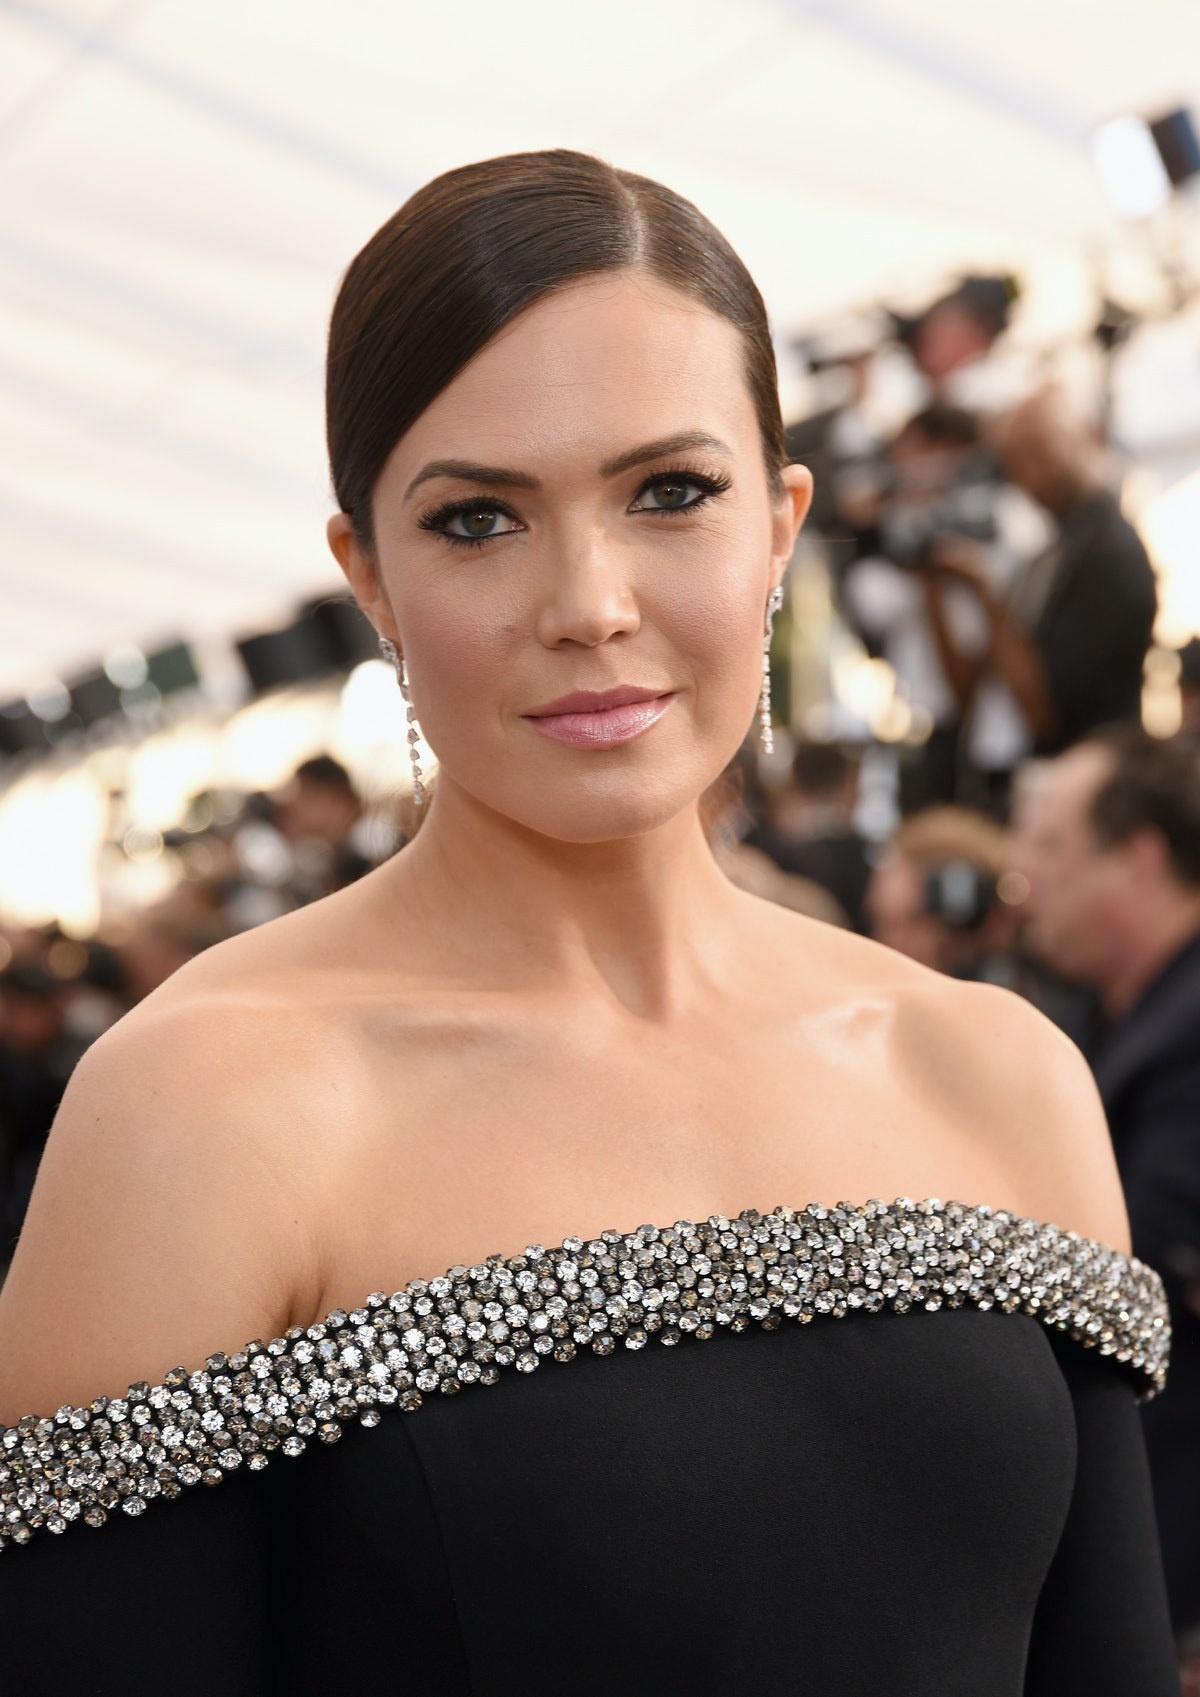 Is Mandy Moore's Bob Haircut Real? She Just Made A Major Hair Change & It Looks So Good